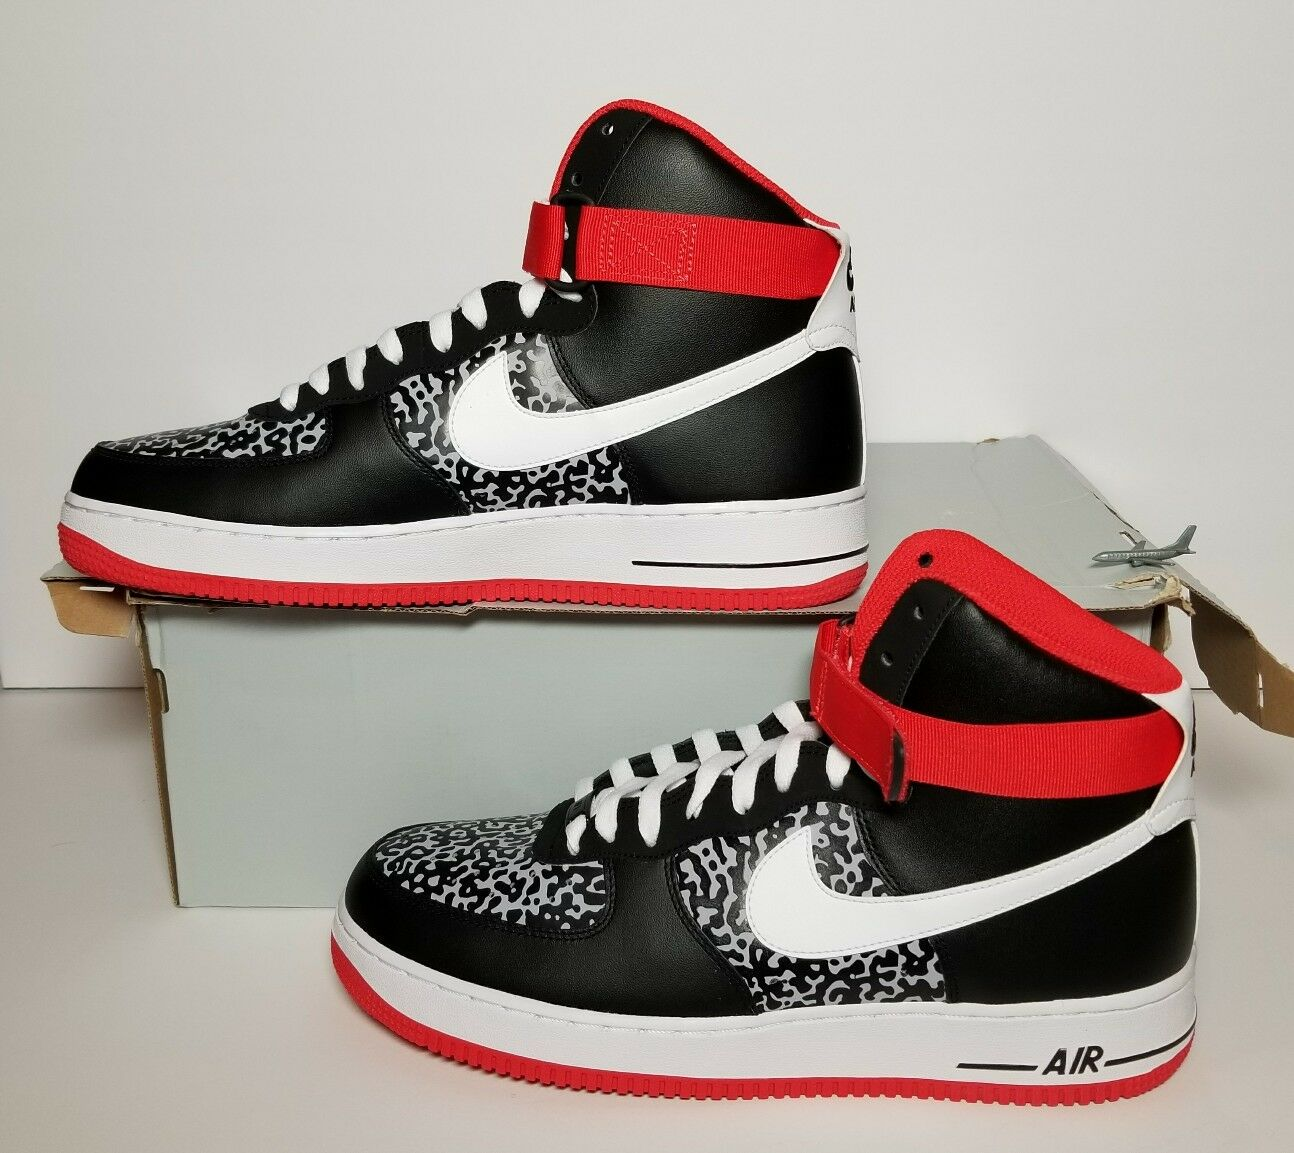 NIKE AIR FORCE 1 HIGH '07 MEN'S MULTIPLE SIZE NEW IN BOX 315121 025  The most popular shoes for men and women